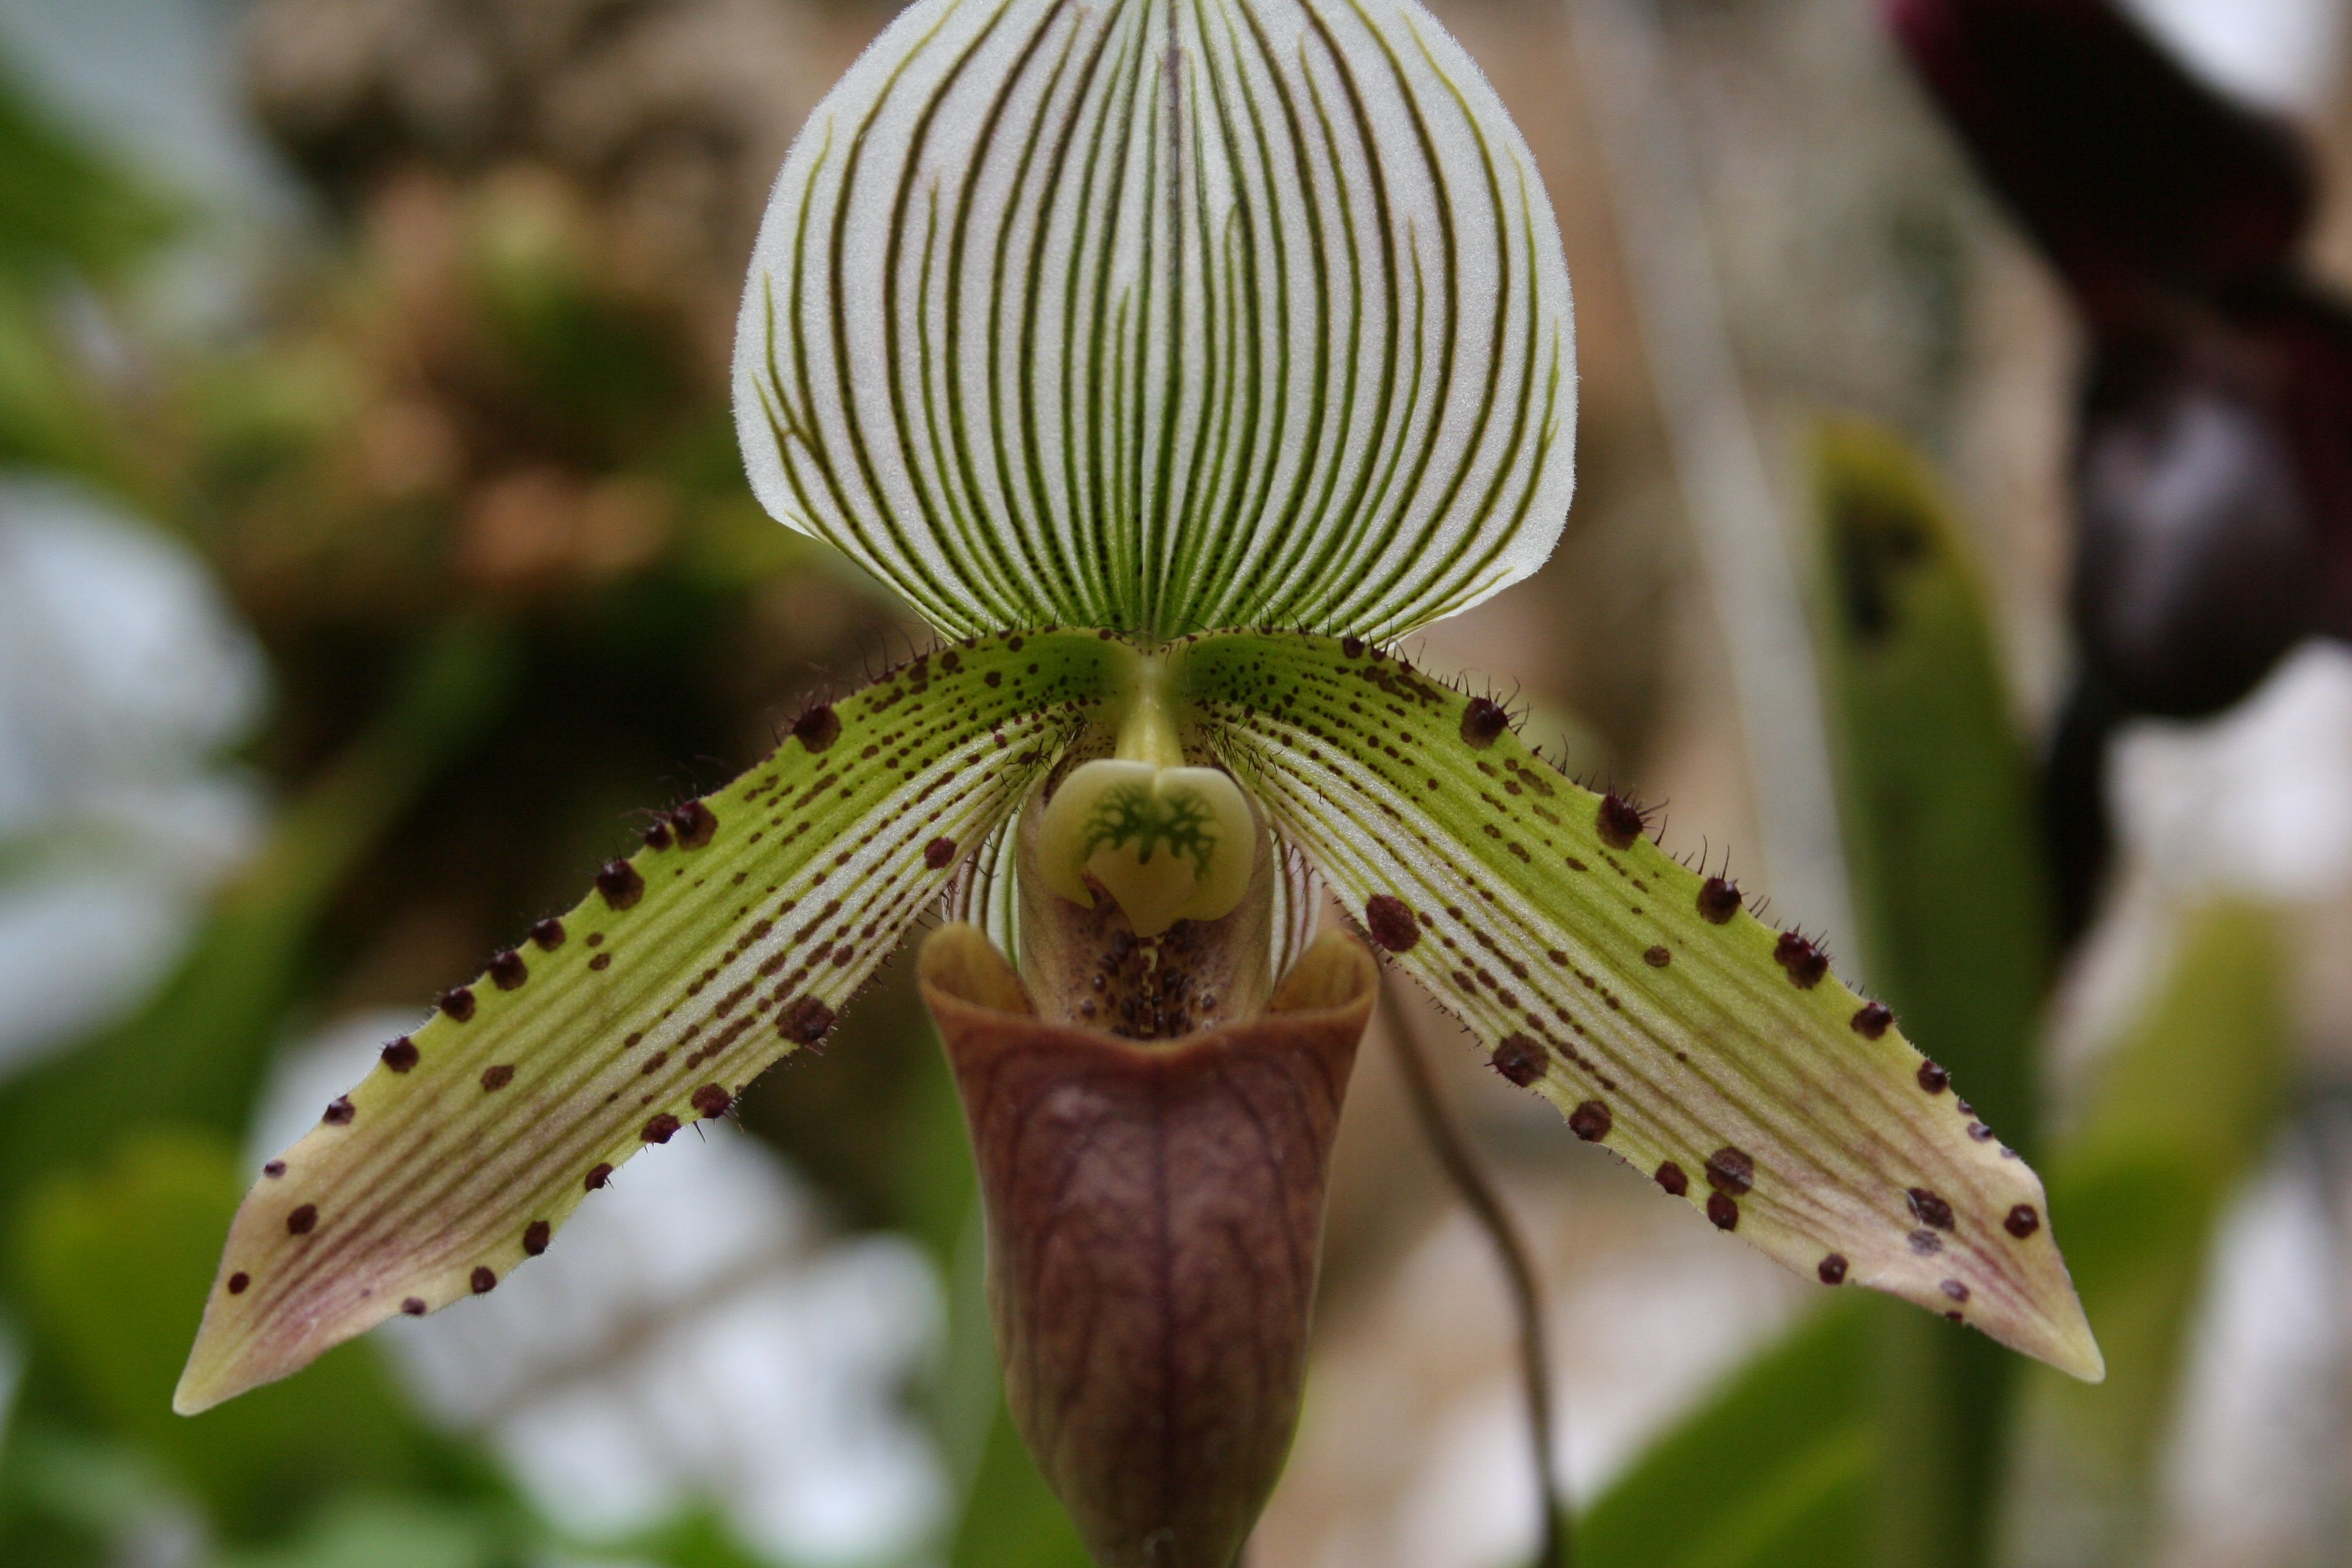 Orchid, Paphiopedilum (commonly called  Lady Slipper) cultivar name unknown. Photo by Chuck Eirschele